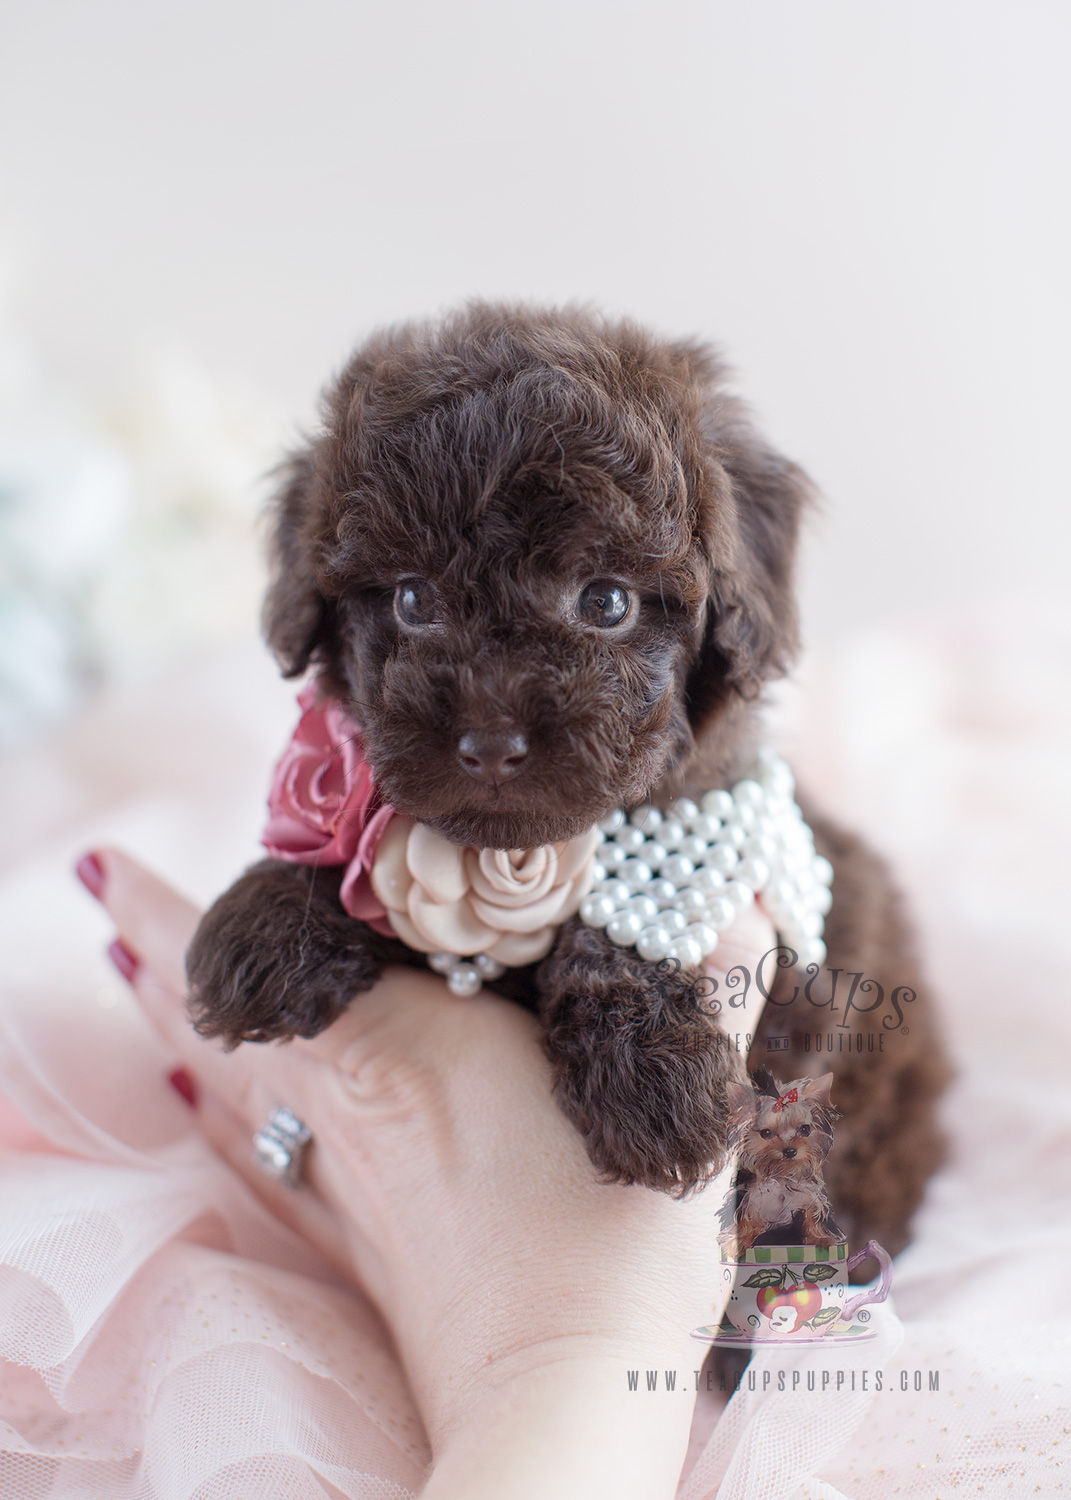 Cream Poodle Puppies For Sale Teacup Puppies Boutique